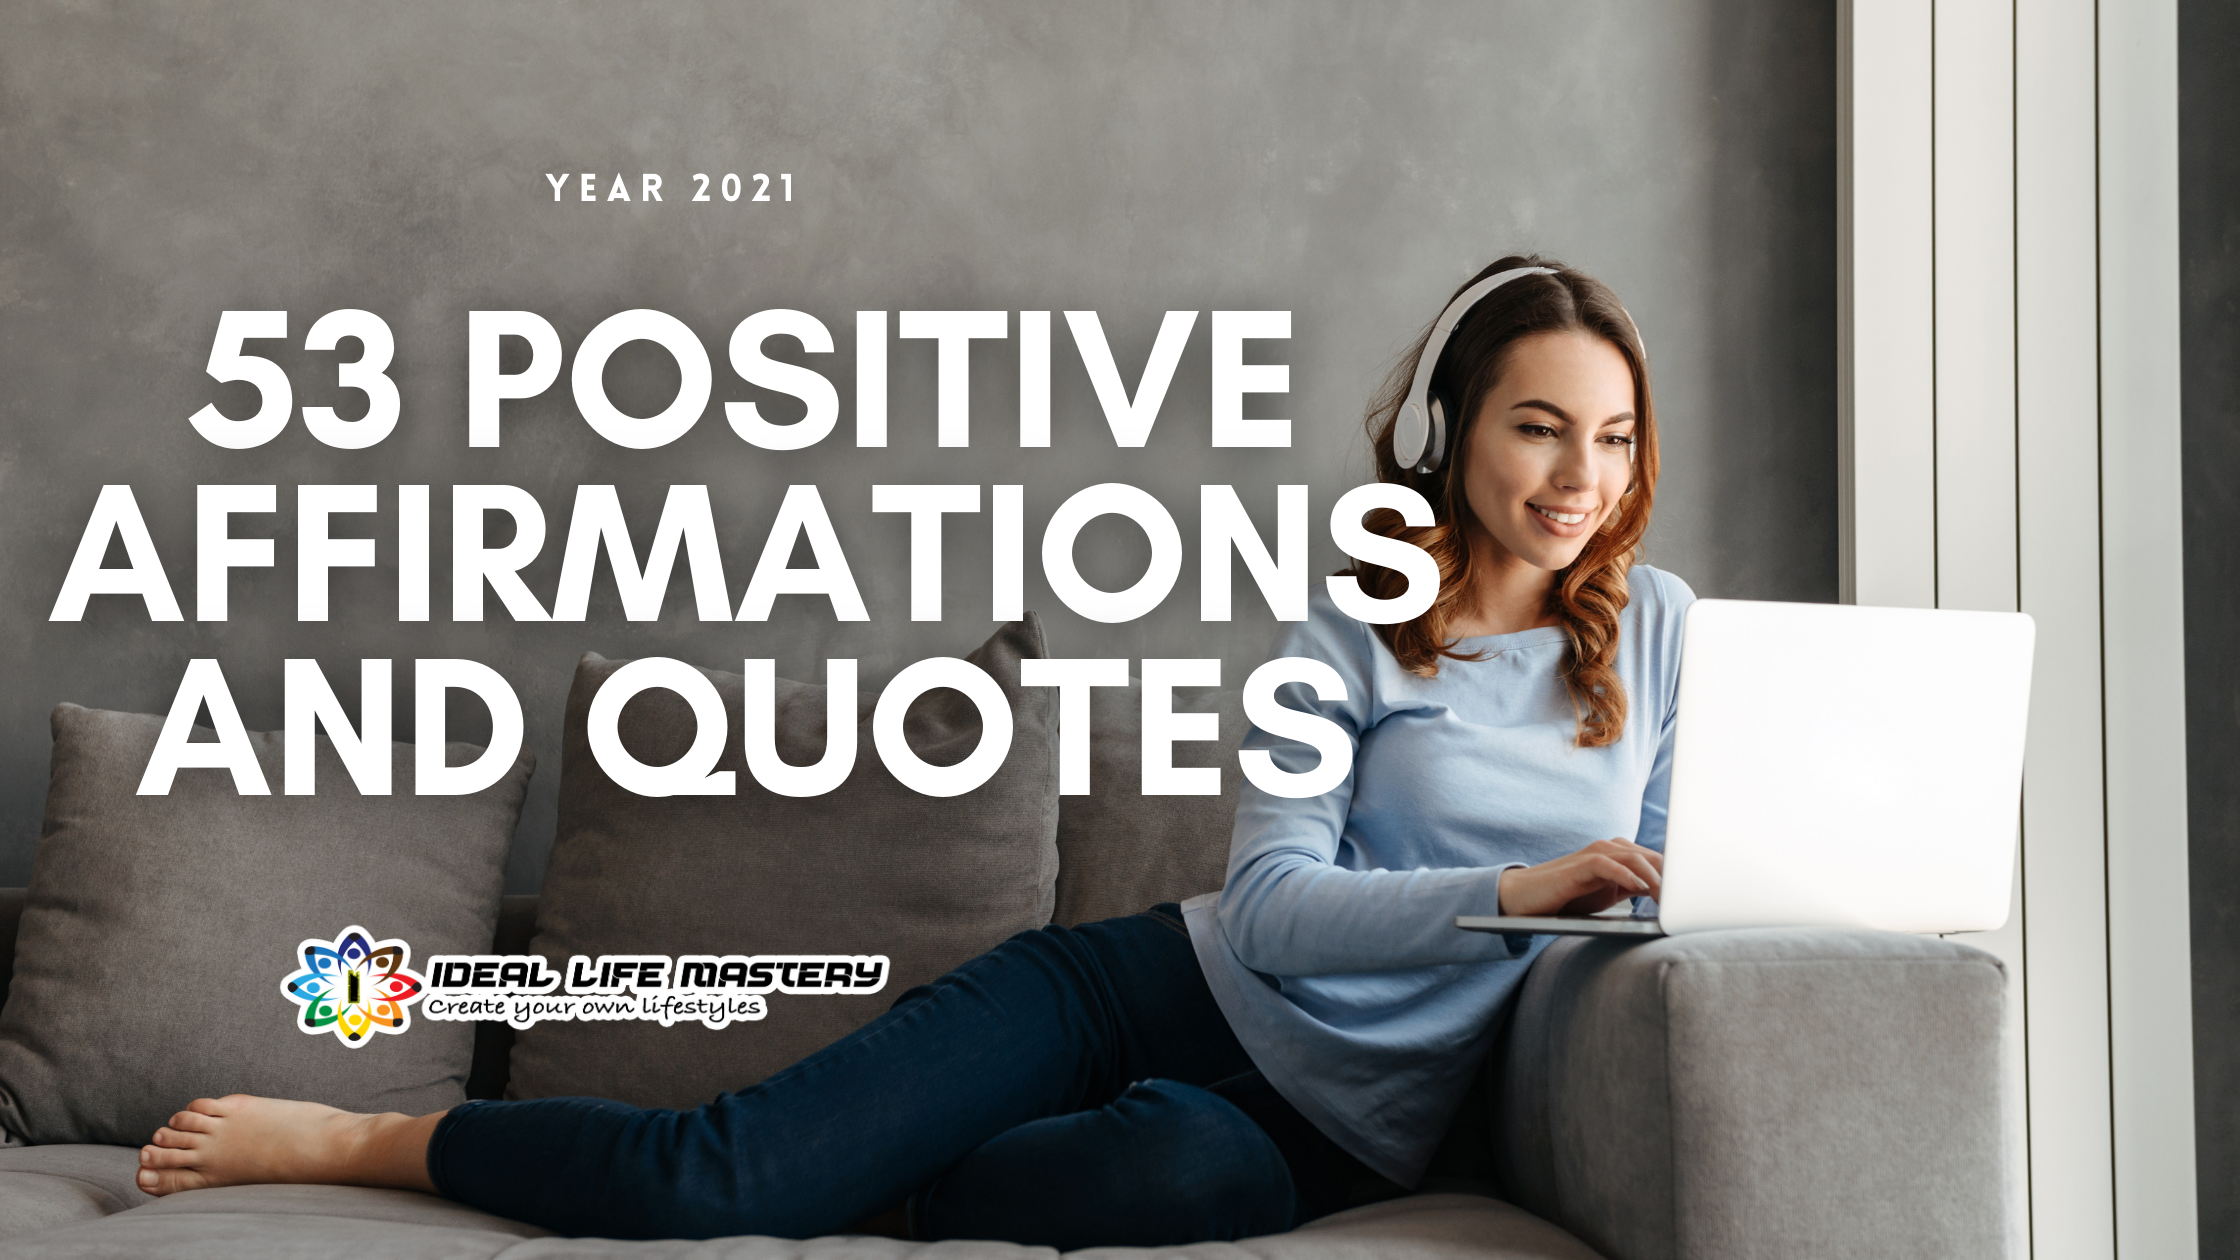 53 positive affirmations and quotes